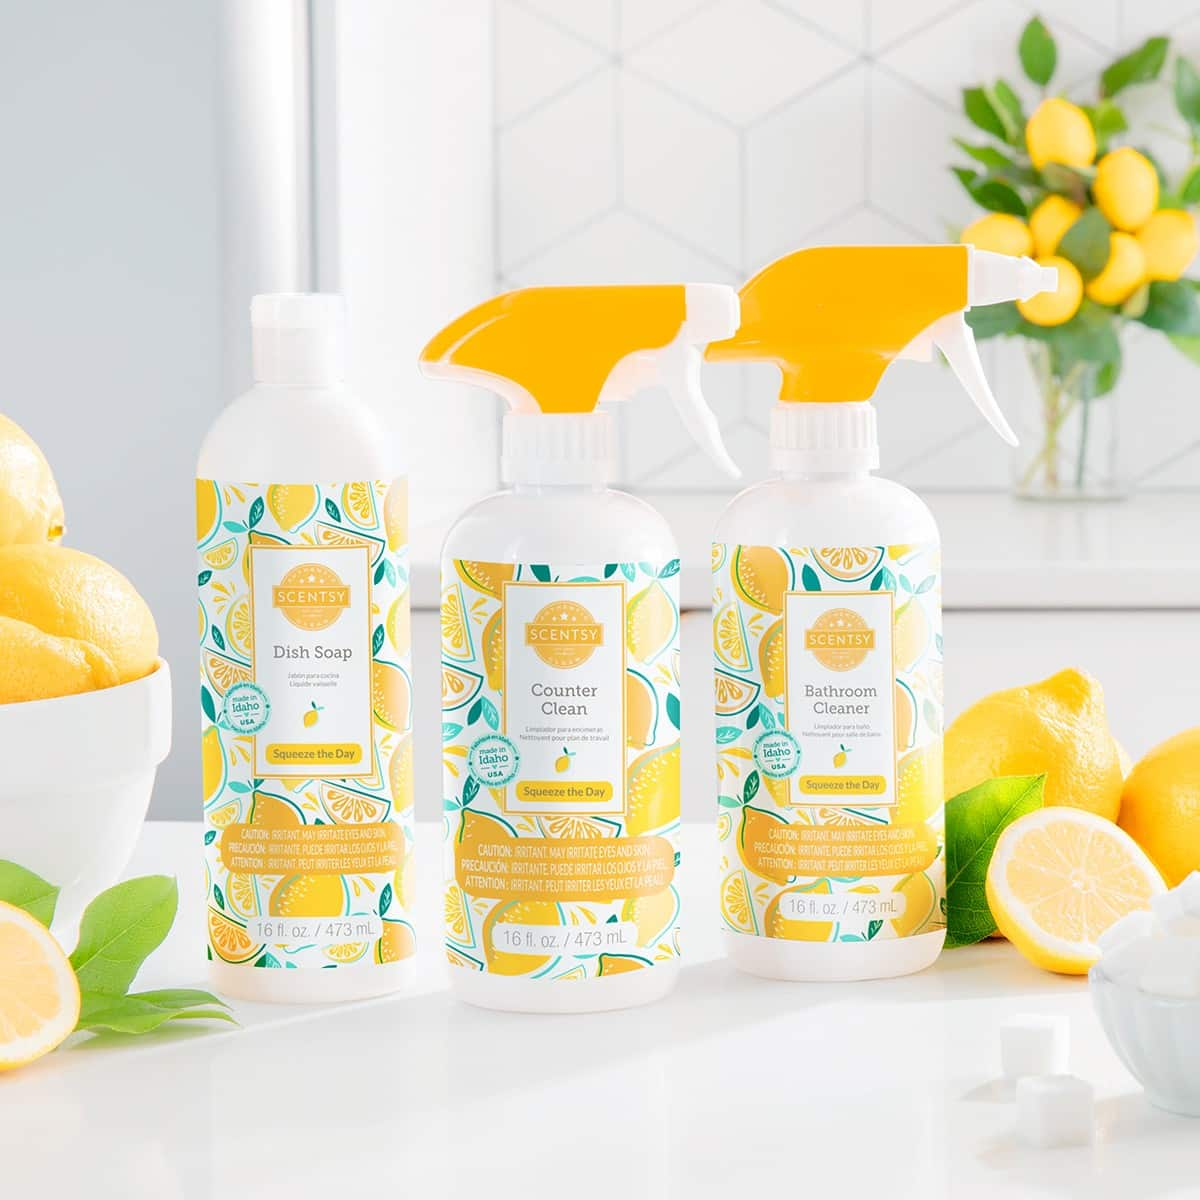 SQUEEZE THE DAY SCENTSY CLEAN BUNDLE